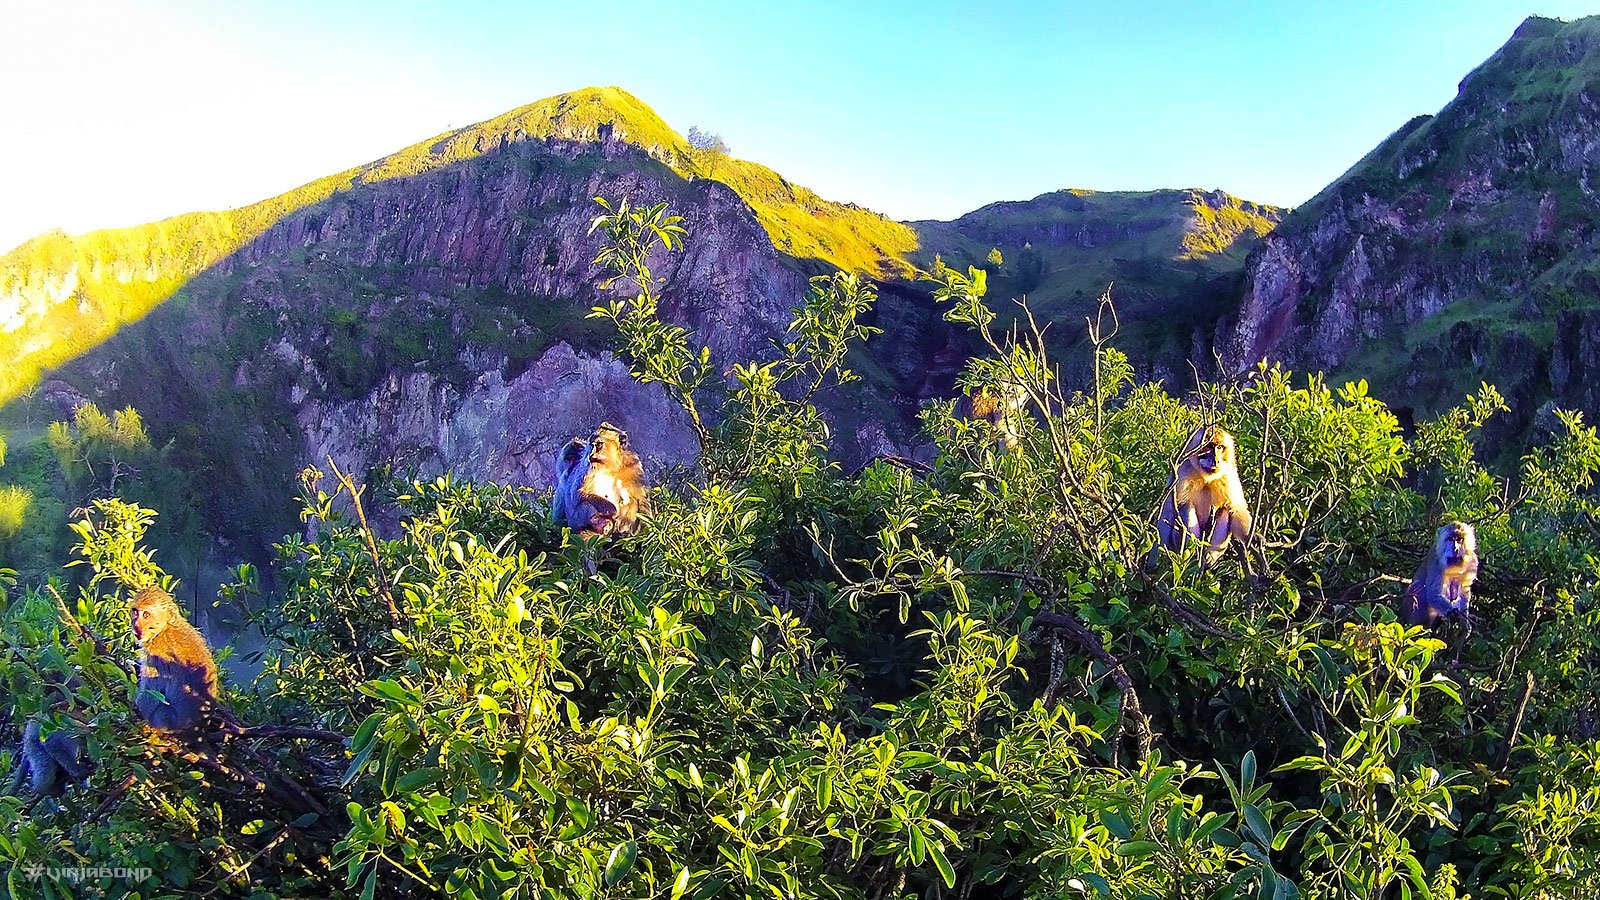 Monkeys at Mount Batur /// Vinjabond